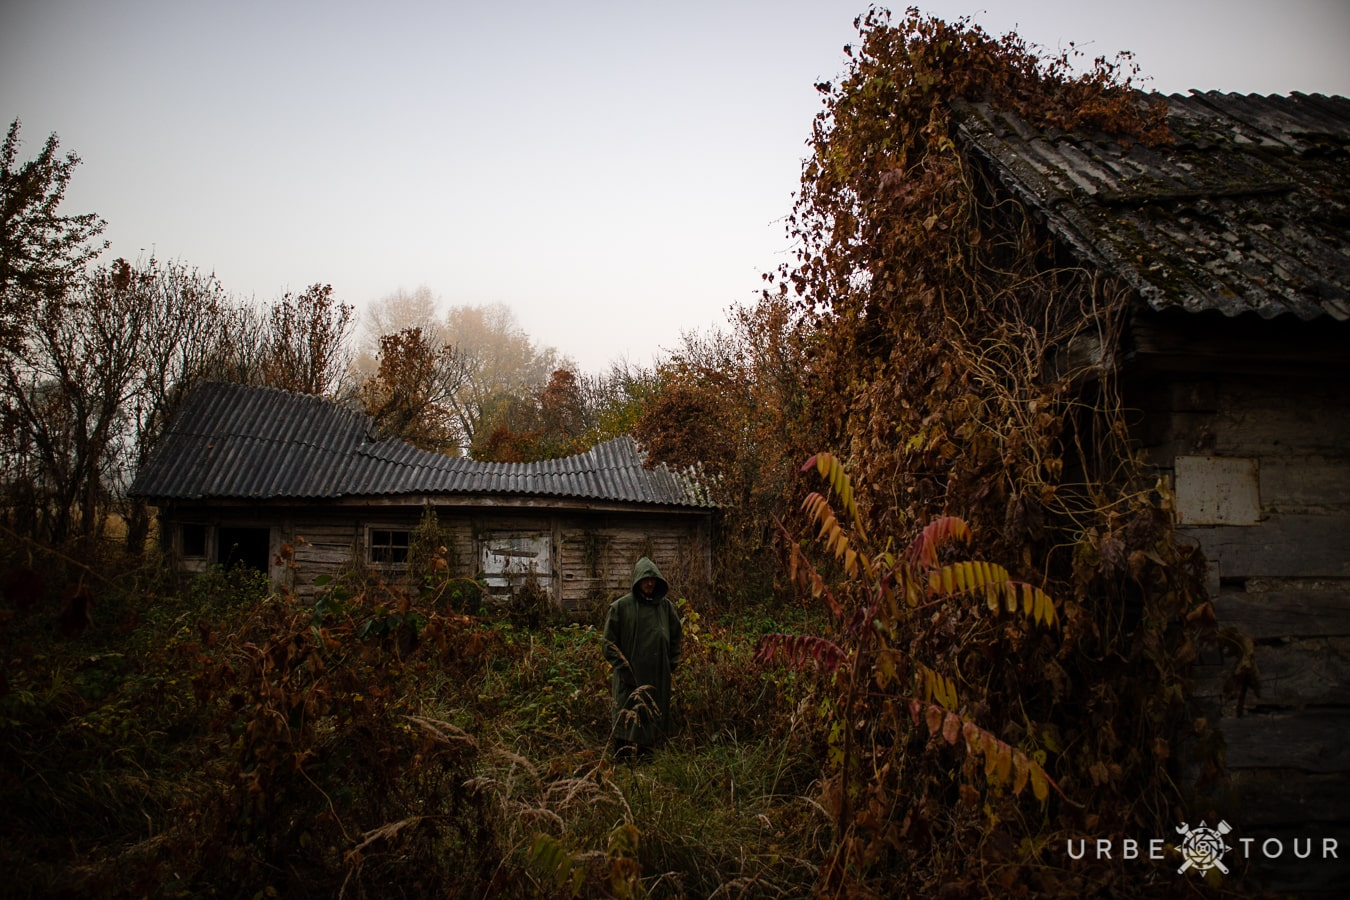 stalker in abandoned chernobyl village